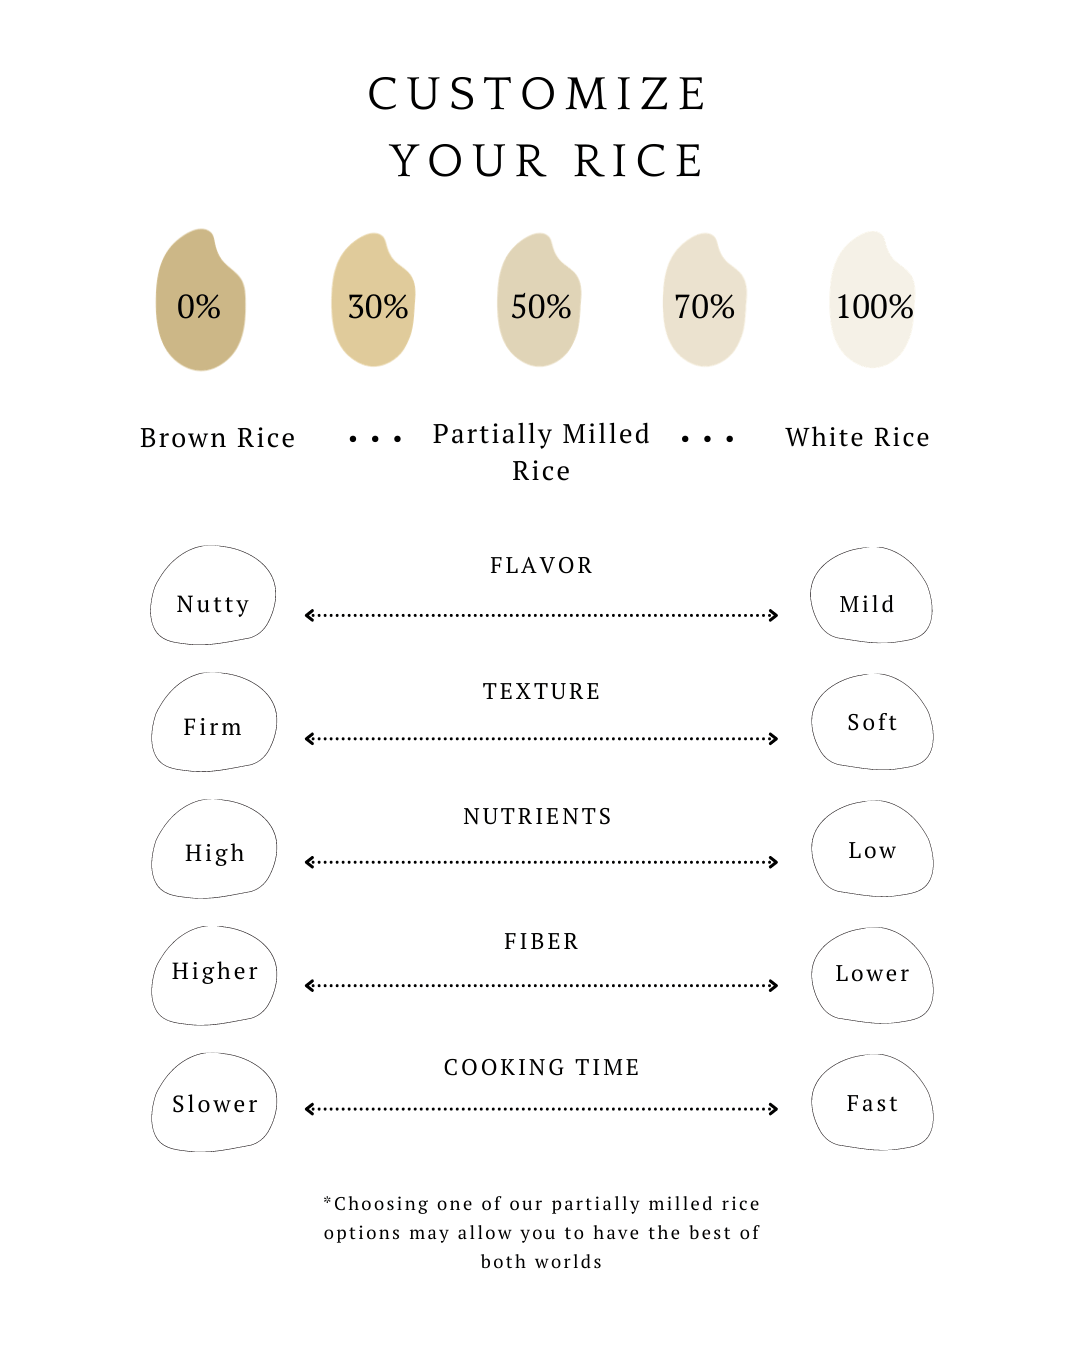 Rice milling comparison chart for customizing your rice